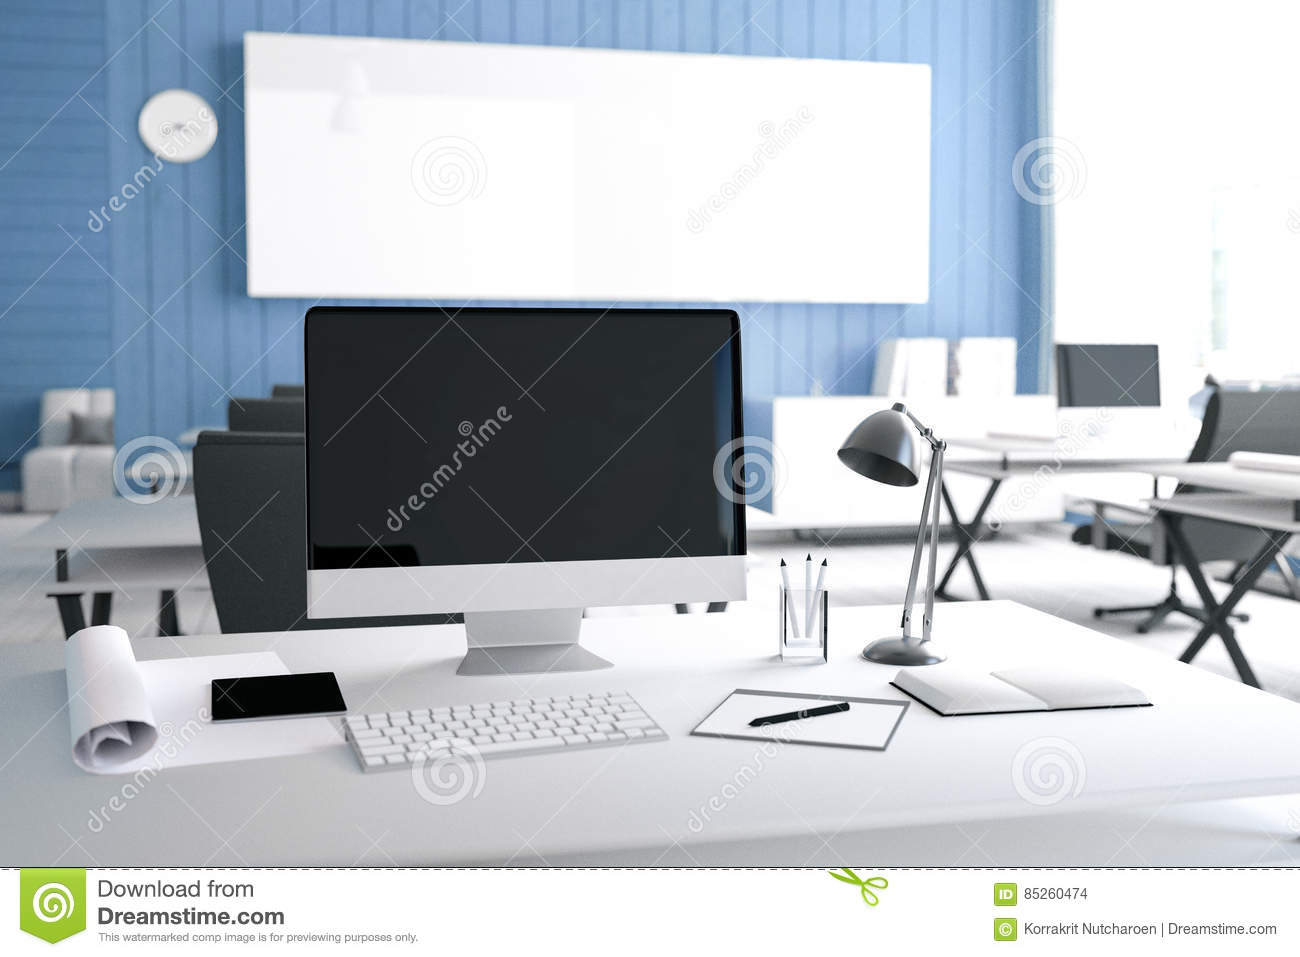 3D Rendering Illustration Of Modern Interior Creative Designer Office Desktop With PC Computerputer Labsworking Place Graphic Design Close Up